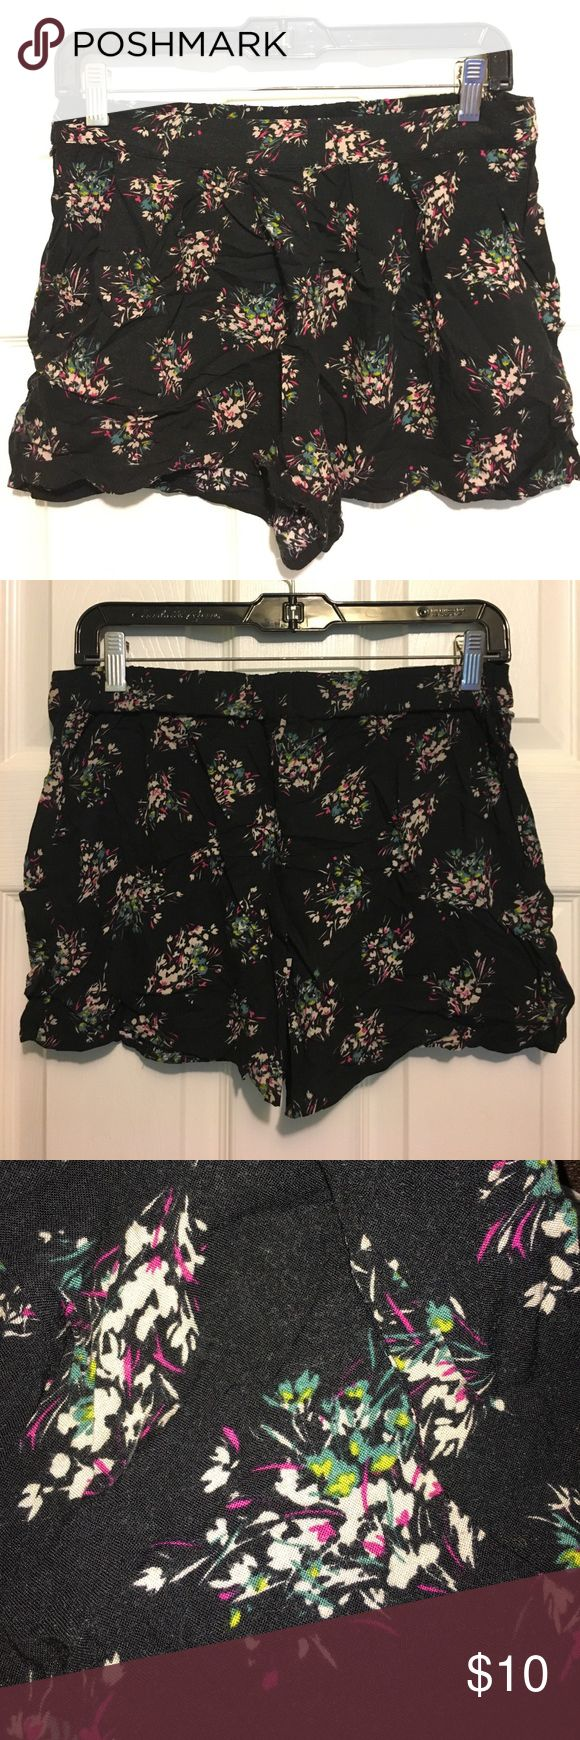 Xhilaration Floral Shorts with Pockets These shorts are breezy and beautiful! The print is pretty in muted teal, pink, and cream flowers, making this the perfect neutral for bright sunny days. Small tear on the right side under the waistband, but can be easily sewn up. Xhilaration Shorts